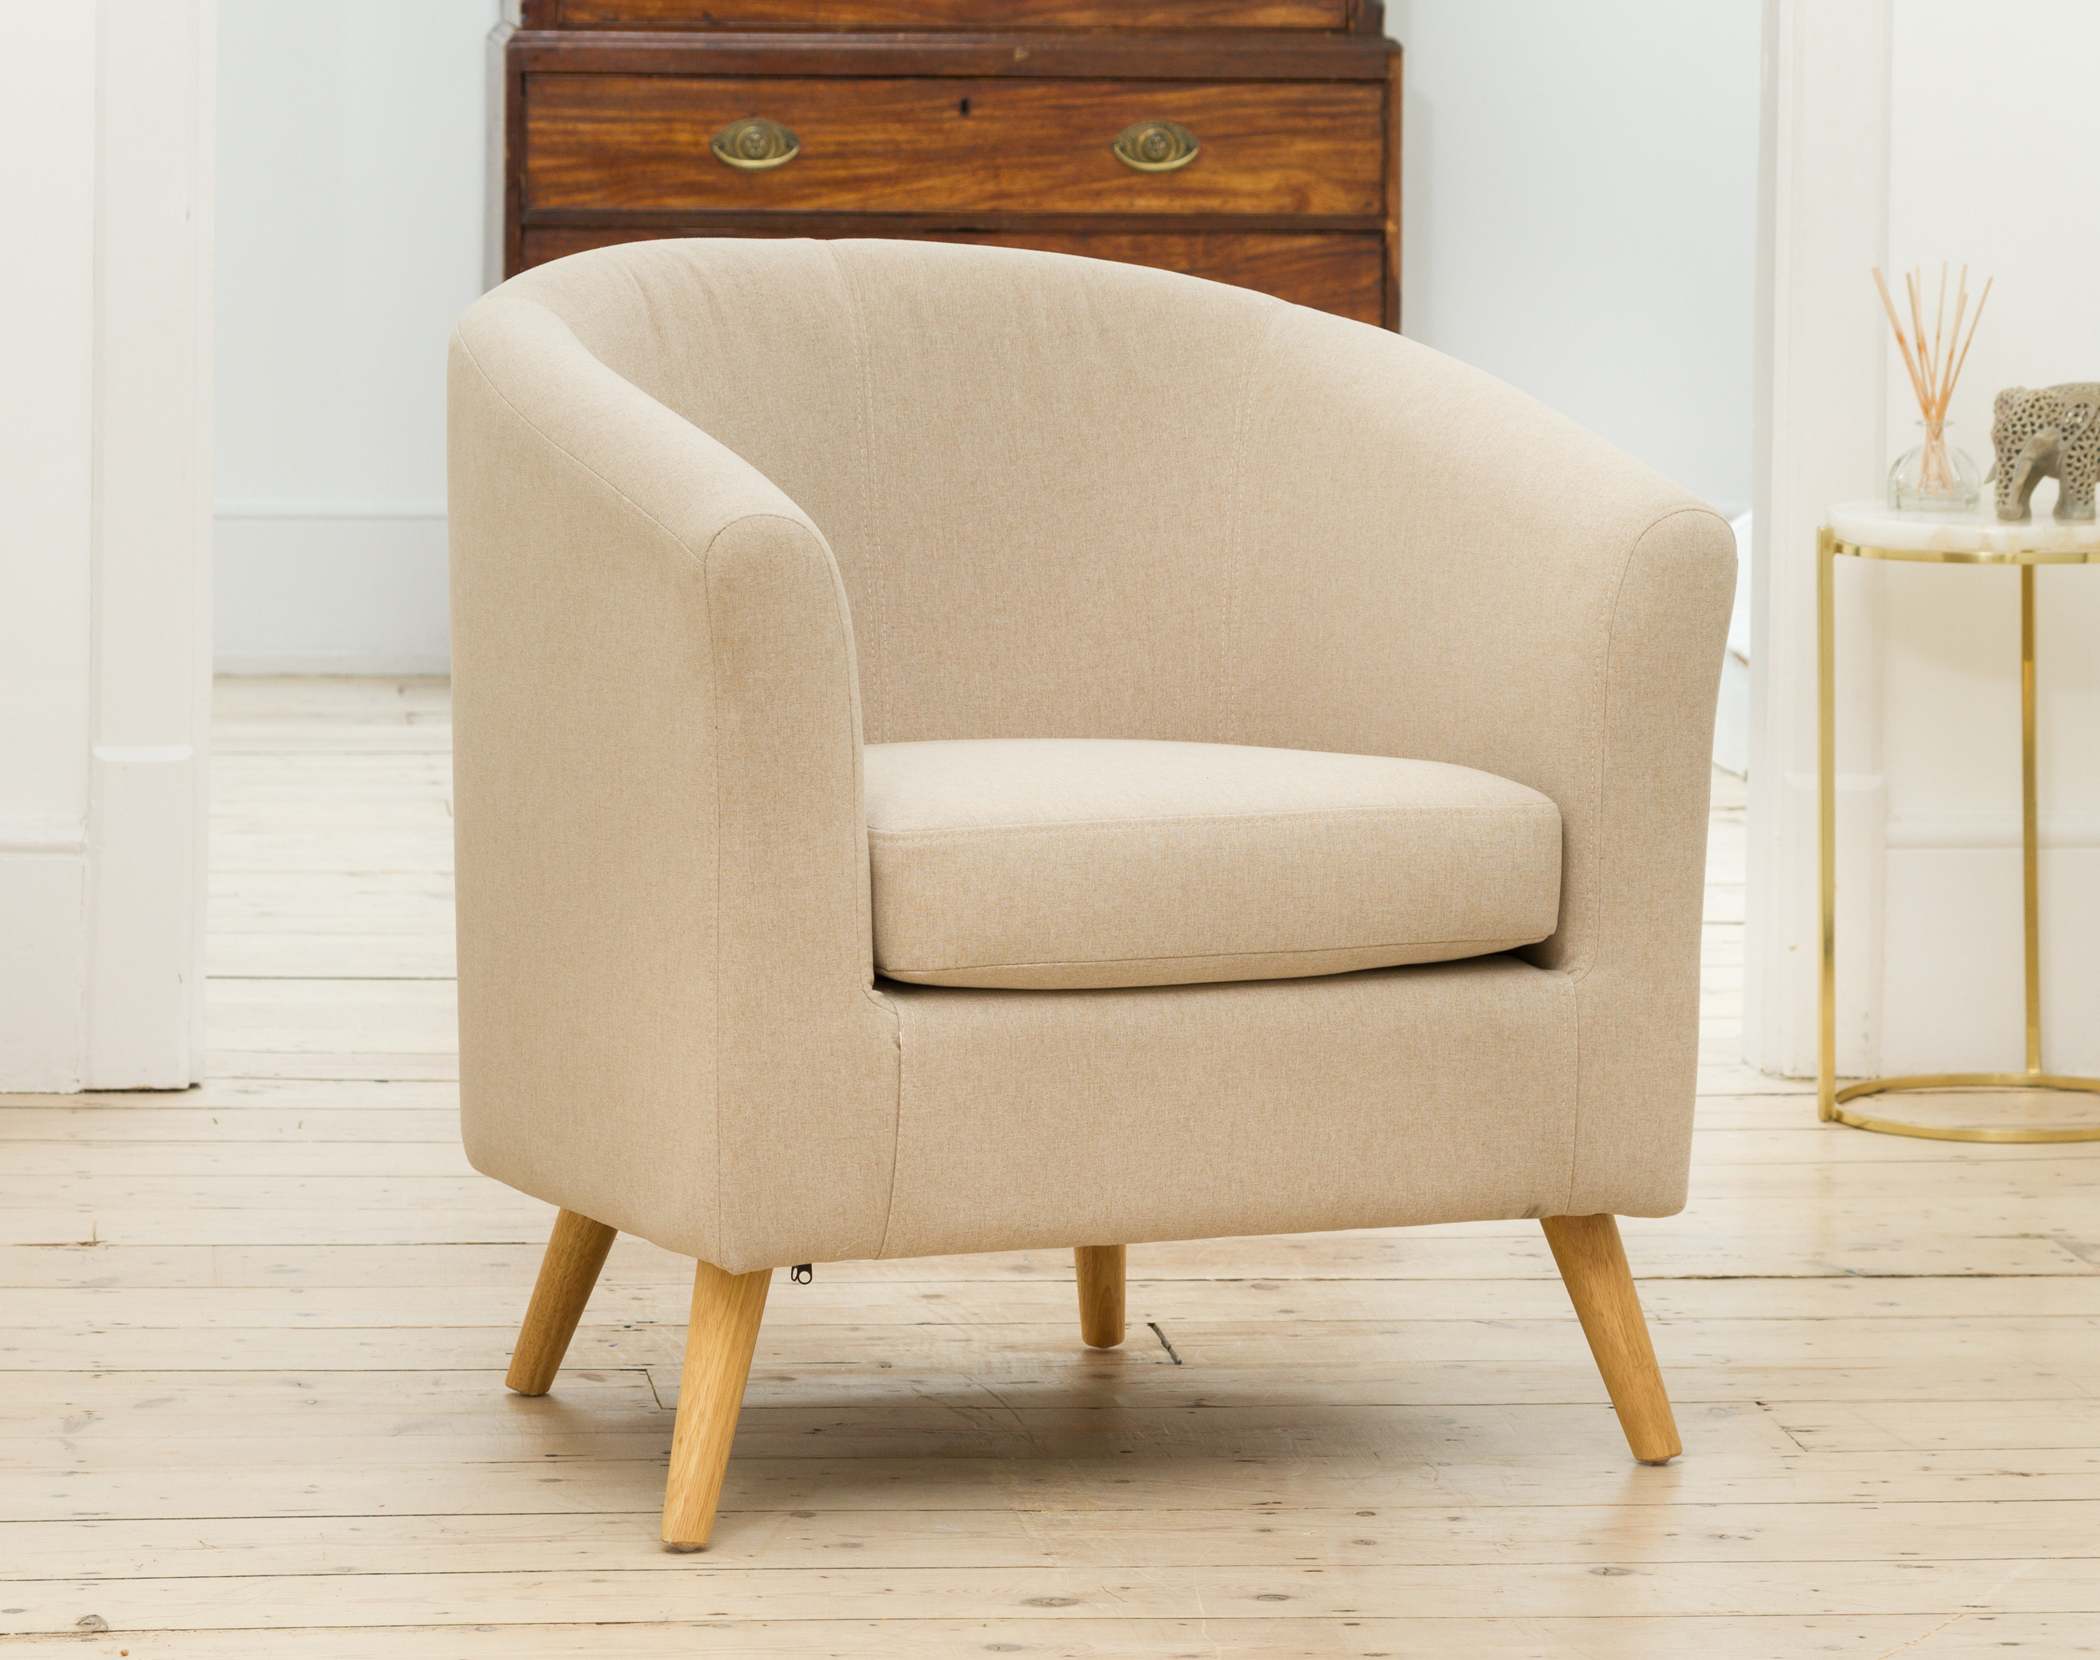 Wycombe Tub Chair sand